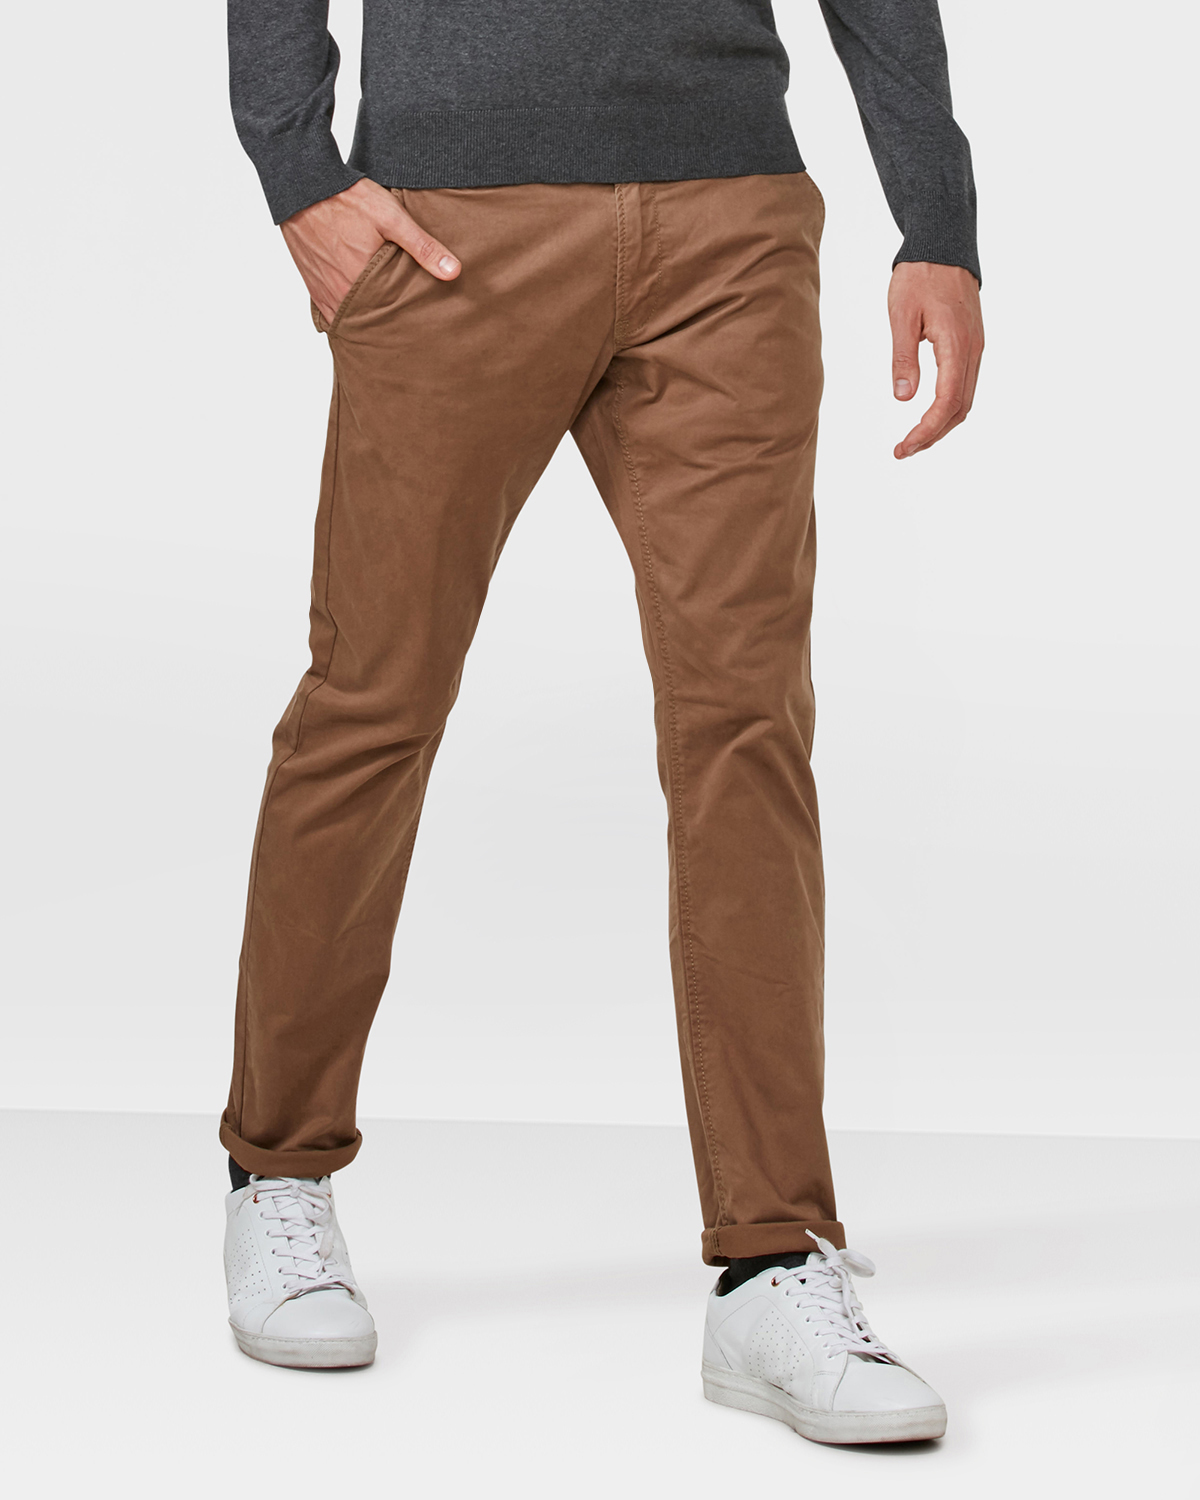 These chinos (aka khakis) are cut in our slim fit and made of the same fabric we use for our other chinos, just with a small bit of added flex.